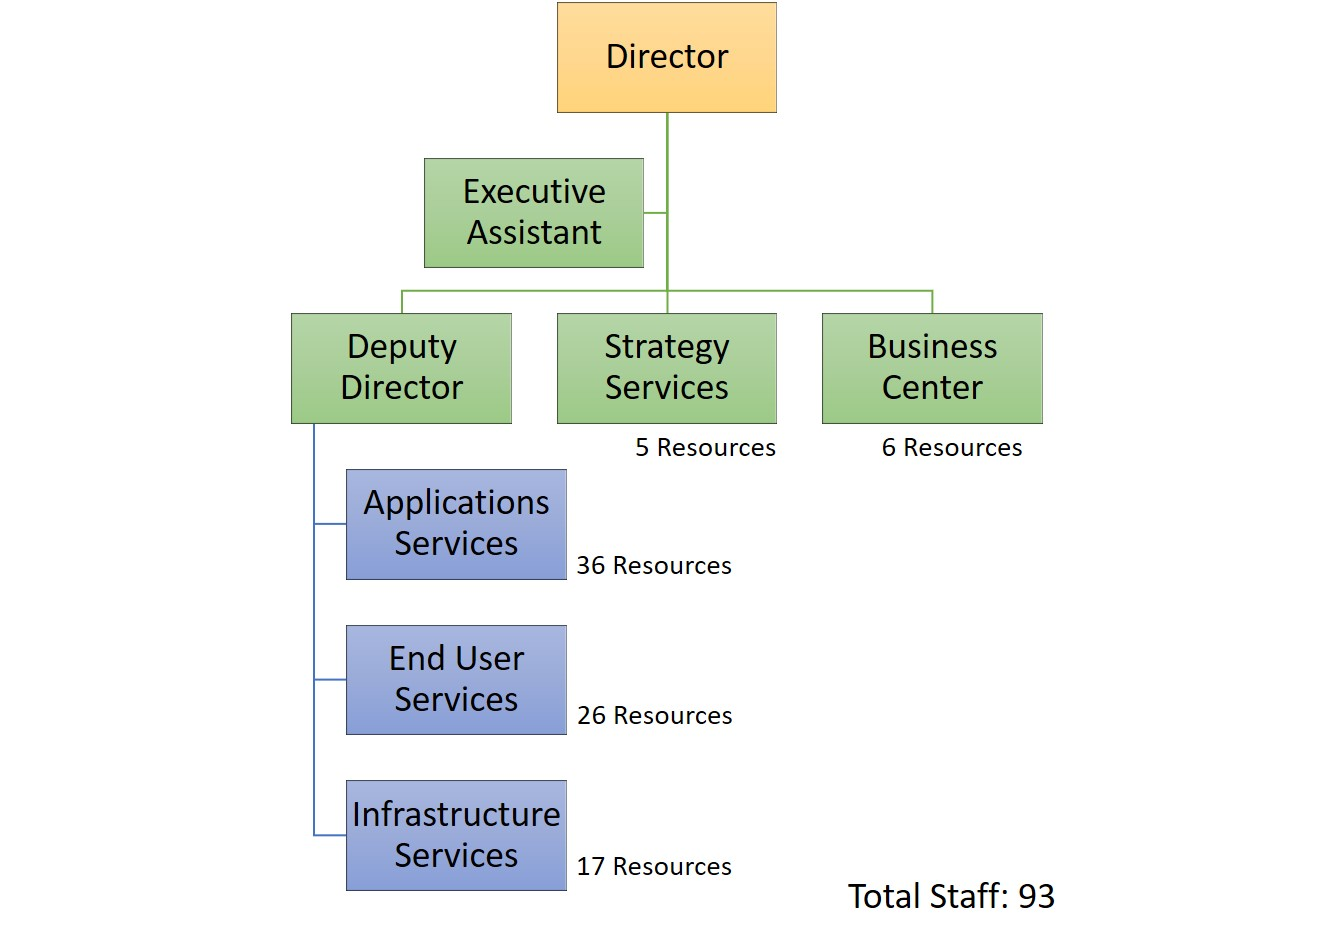 DIT Functional Organizational Chart